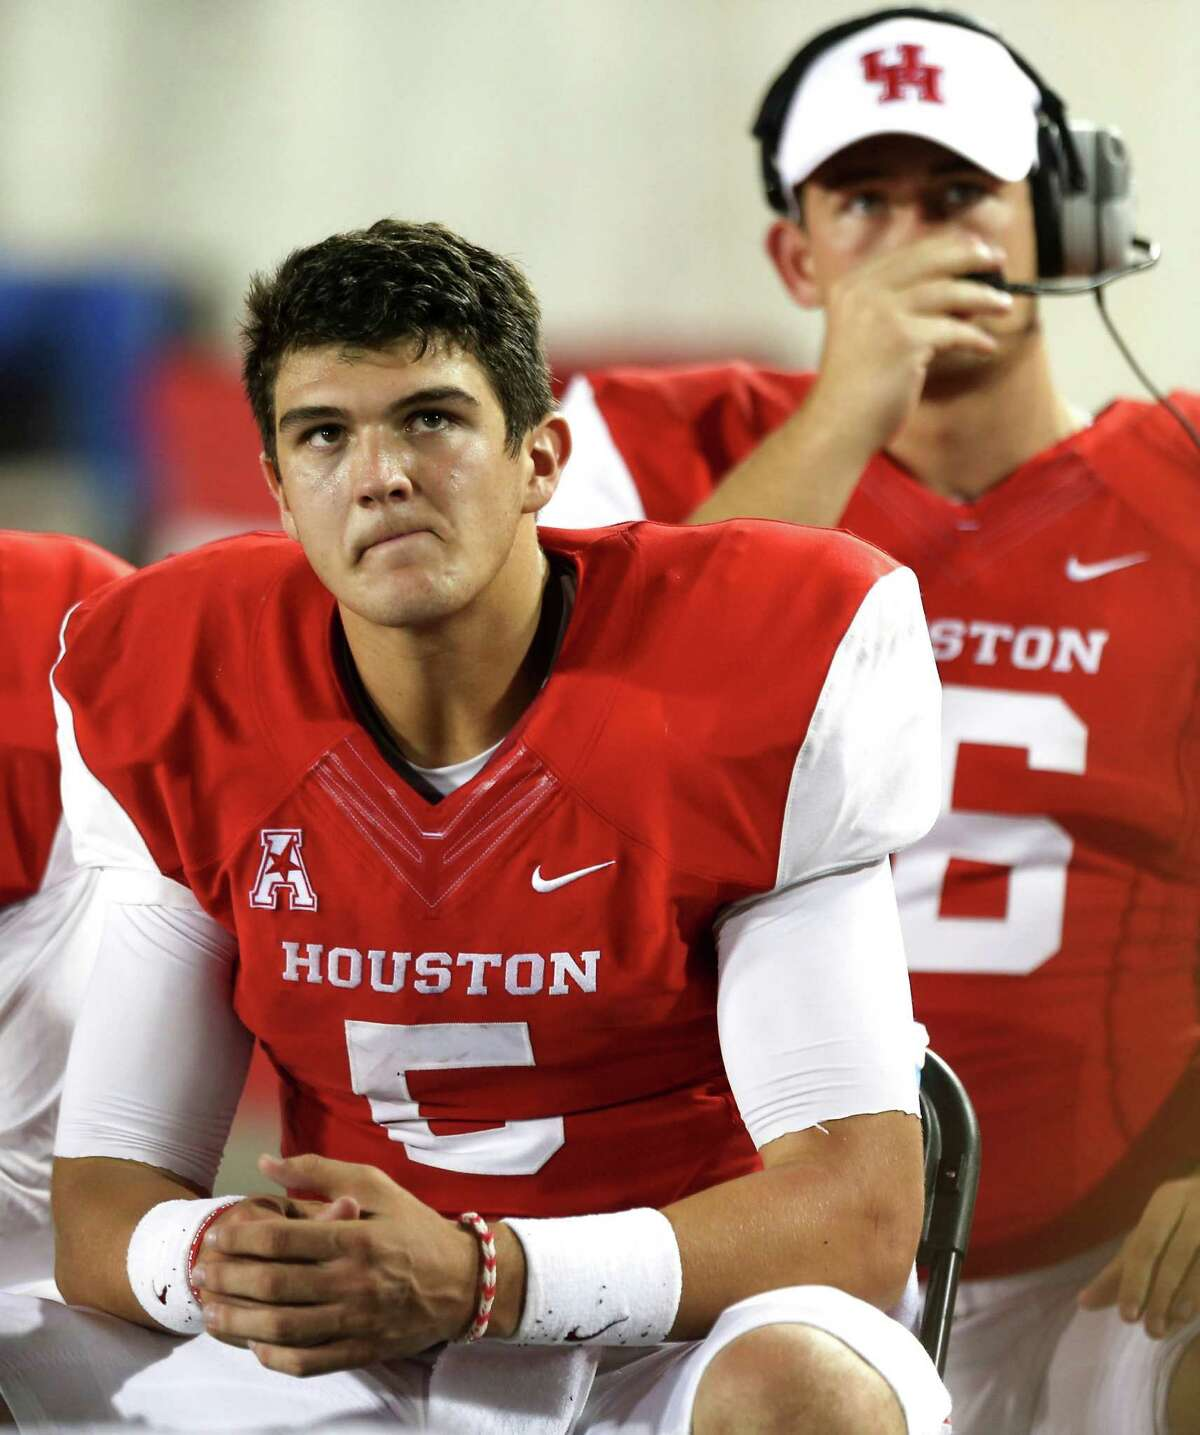 Houston quarterback John O'Korn (5) sits on the sidelines after throwing an interception against UTSA during the second half of an NCAA football game at TDECU Stadium, Friday, Aug. 29, 2014, in Houston.